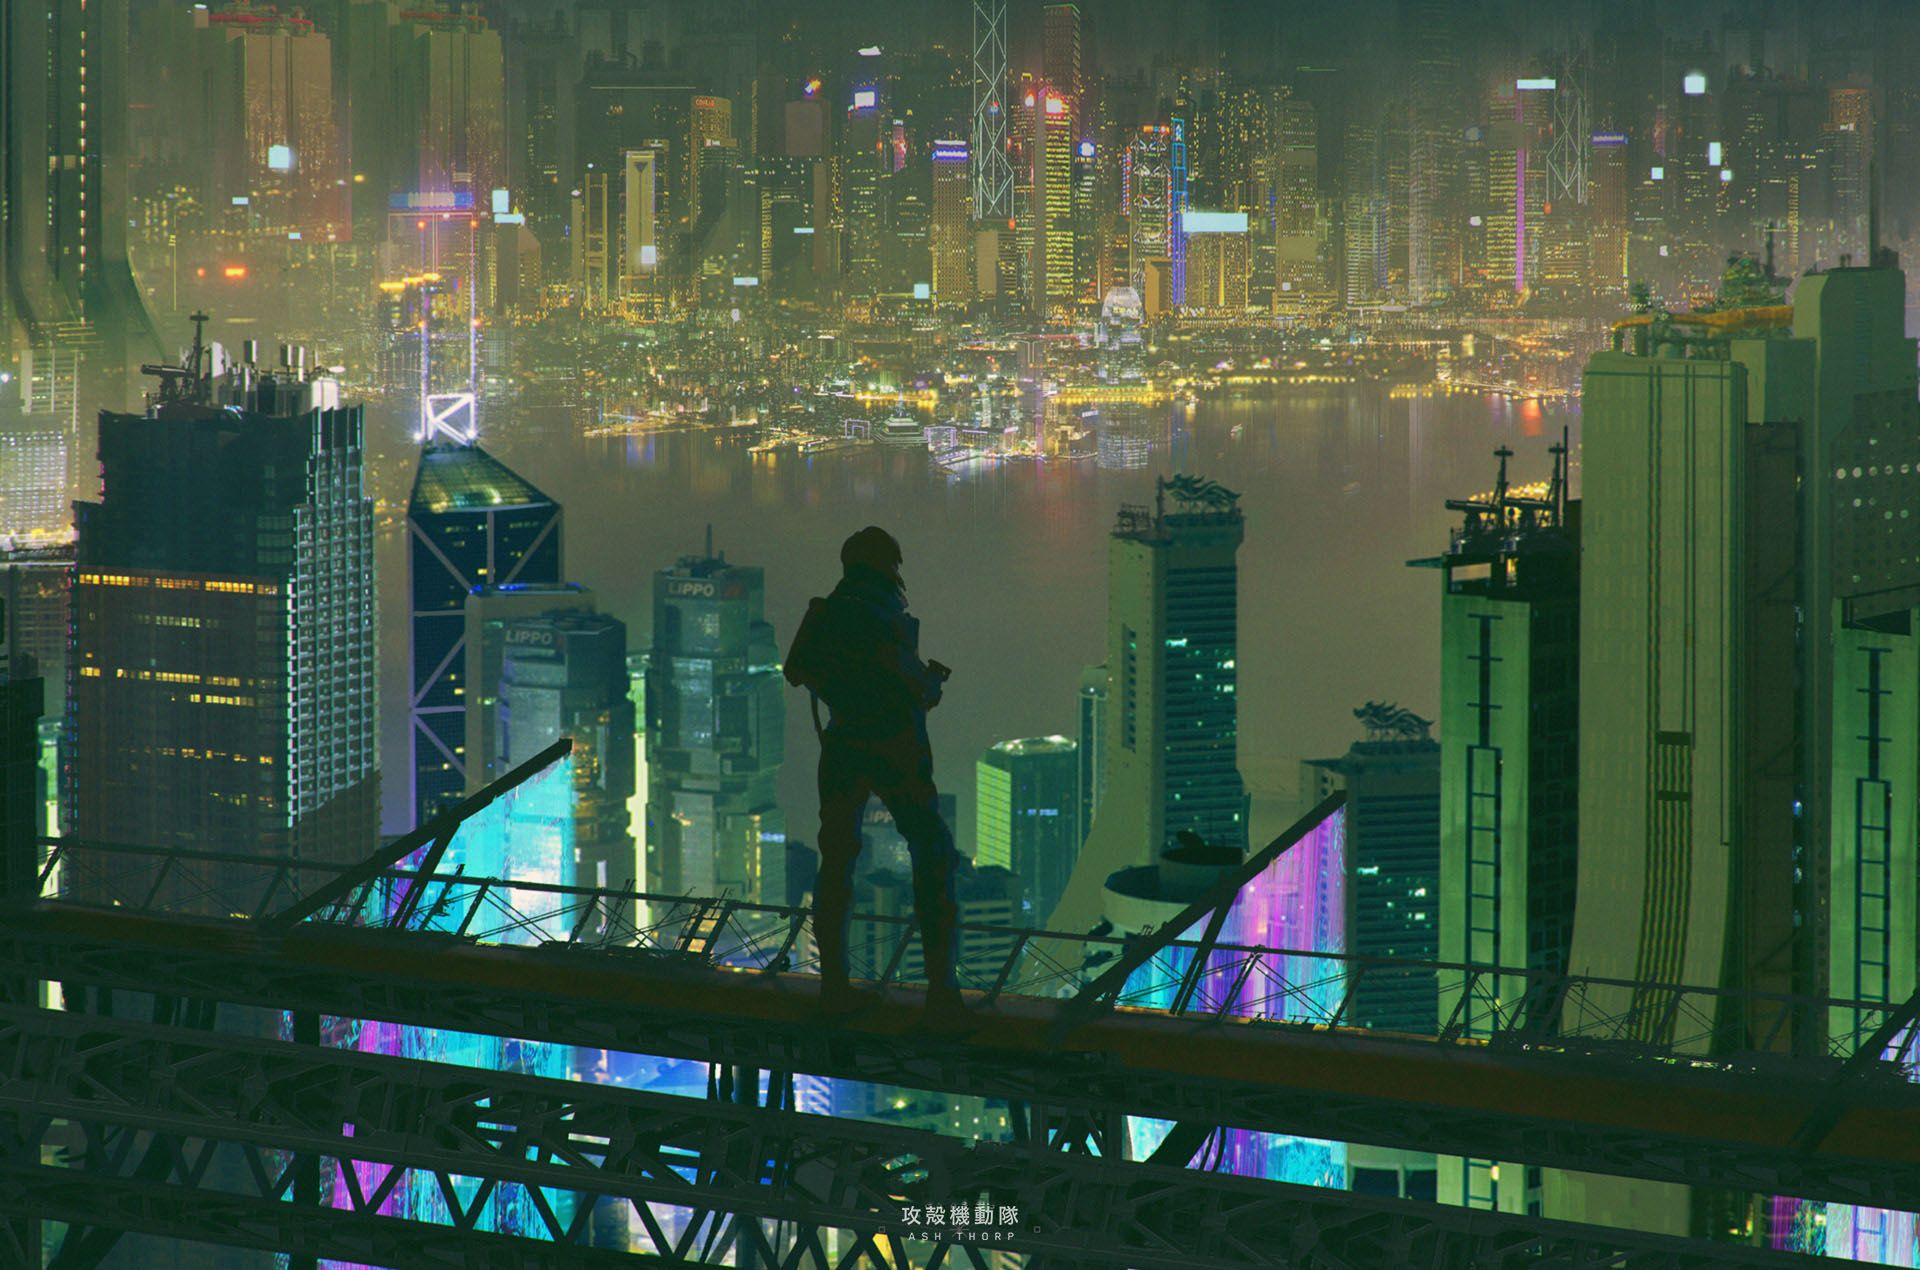 Ghost In The Shell Unused Promotional Material Screen Rant Ghost In The Shell Cyberpunk City Anime City